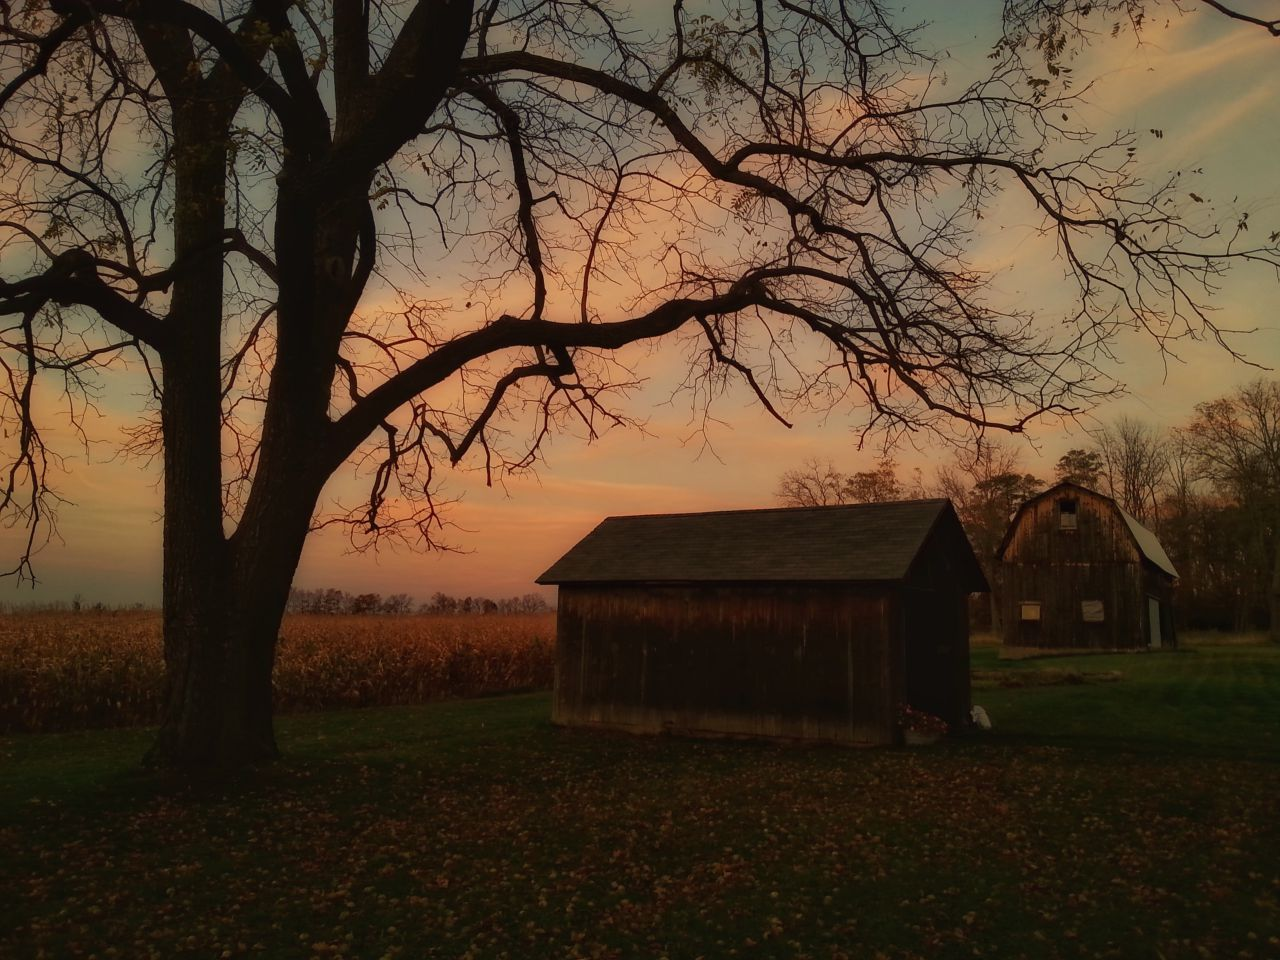 Winds of change in the Finger Lakes (photo)